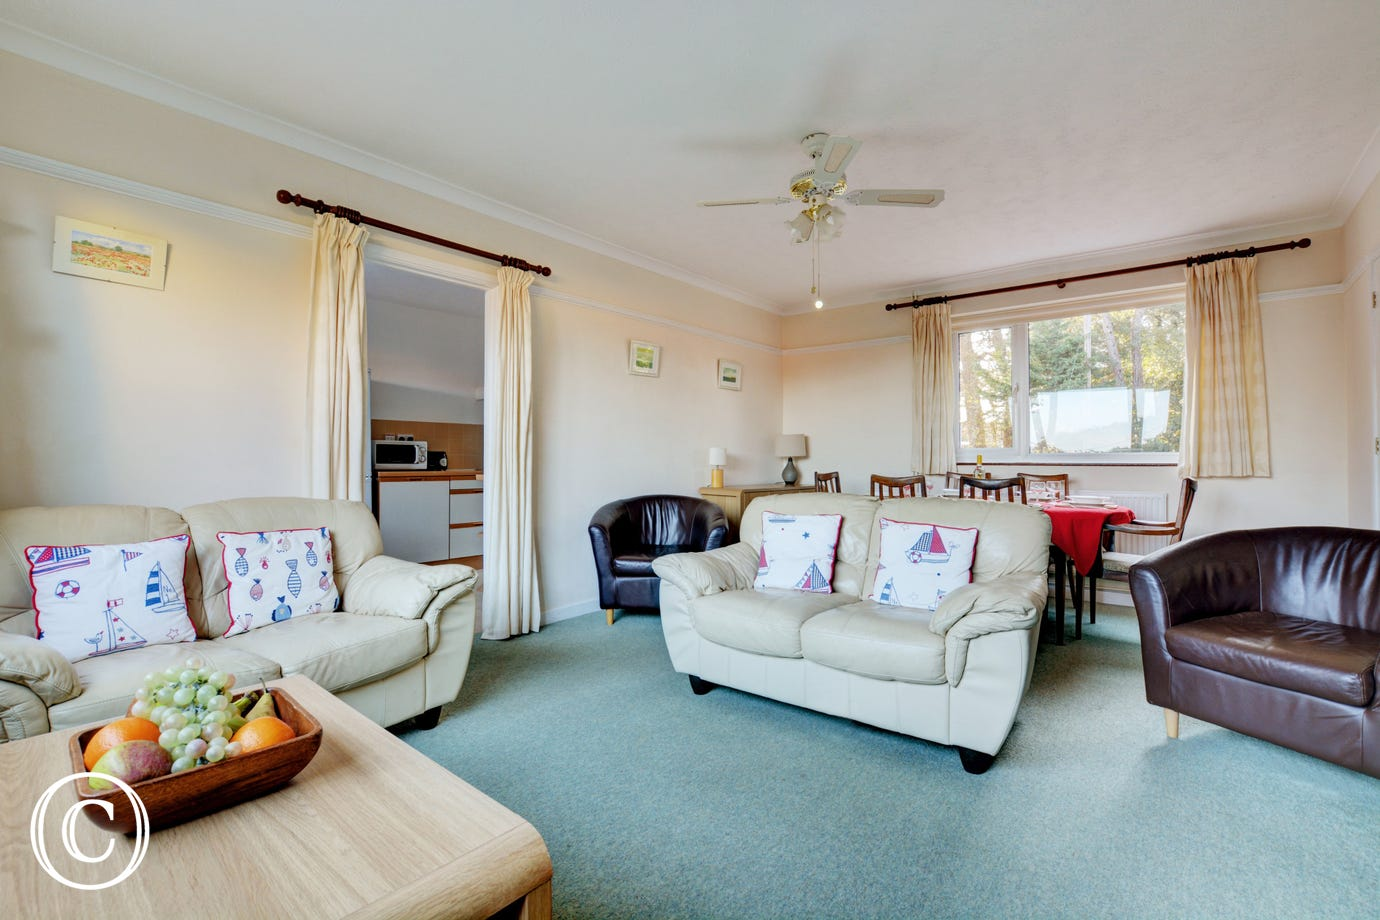 Pleasantly furnished with comfortable seating and space for all the family